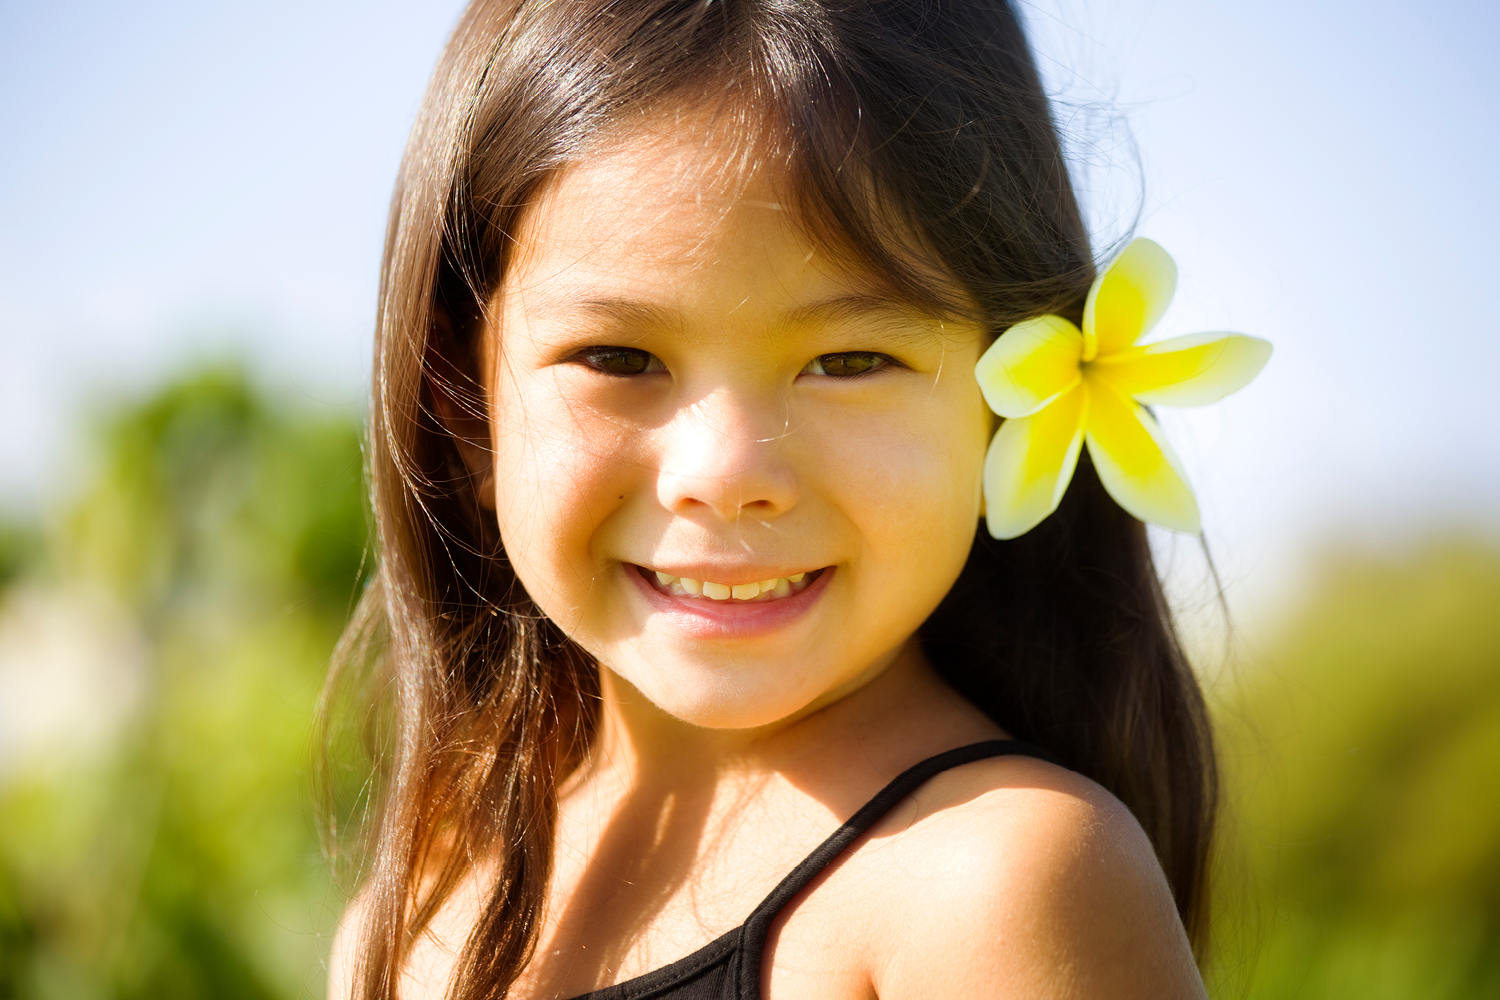 Cute little brunette girl with yellow plumeria blossom in her hair